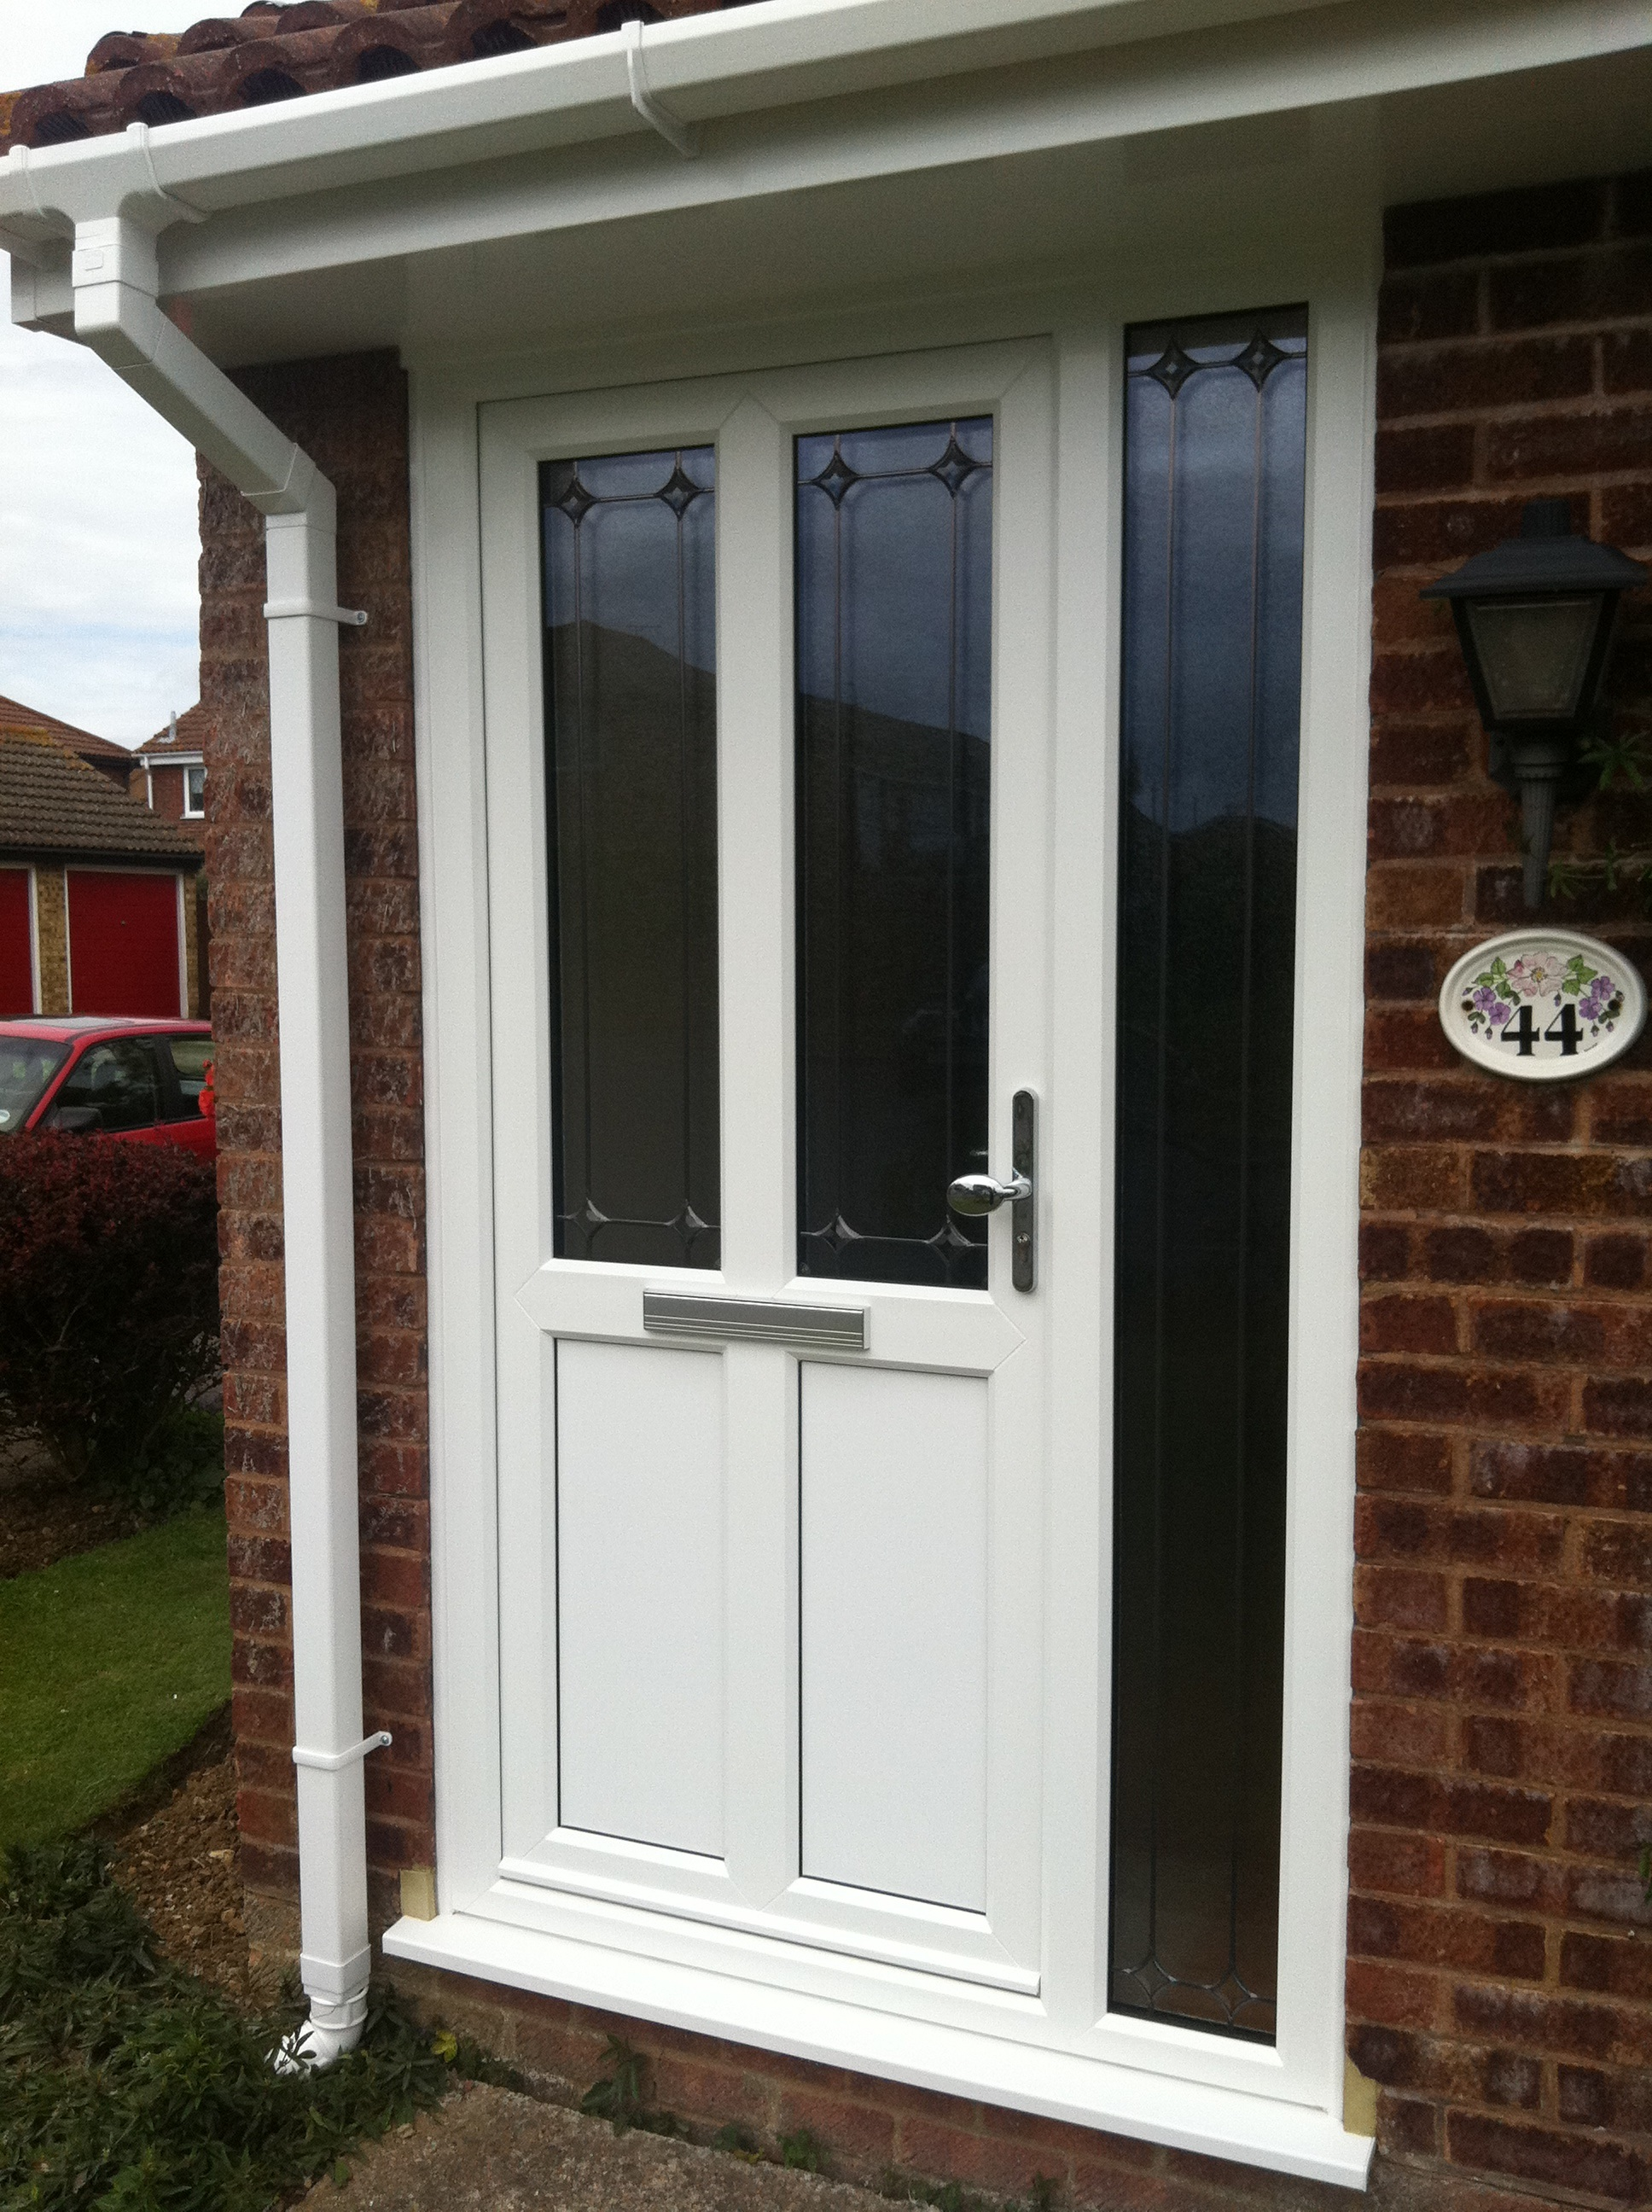 1st class window systems ltd manufactures of high quality upvc and